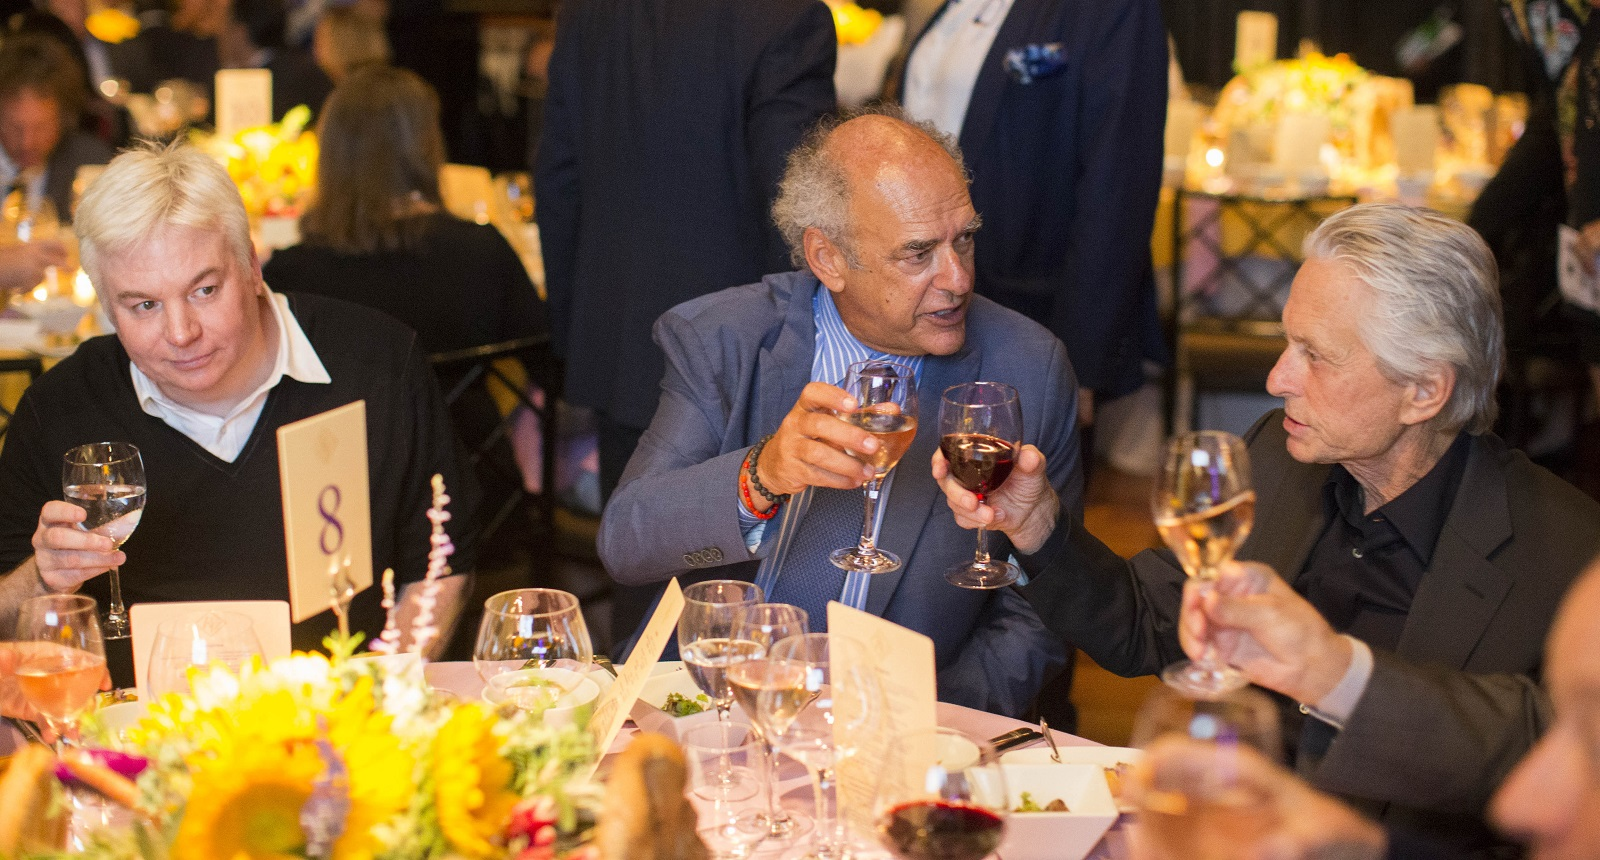 Legendary producer Shep Gordon, center, sits with actors Mike Myers, left, and Michael Douglas, right, during a fundraiser. (Derek Gee/Buffalo News)